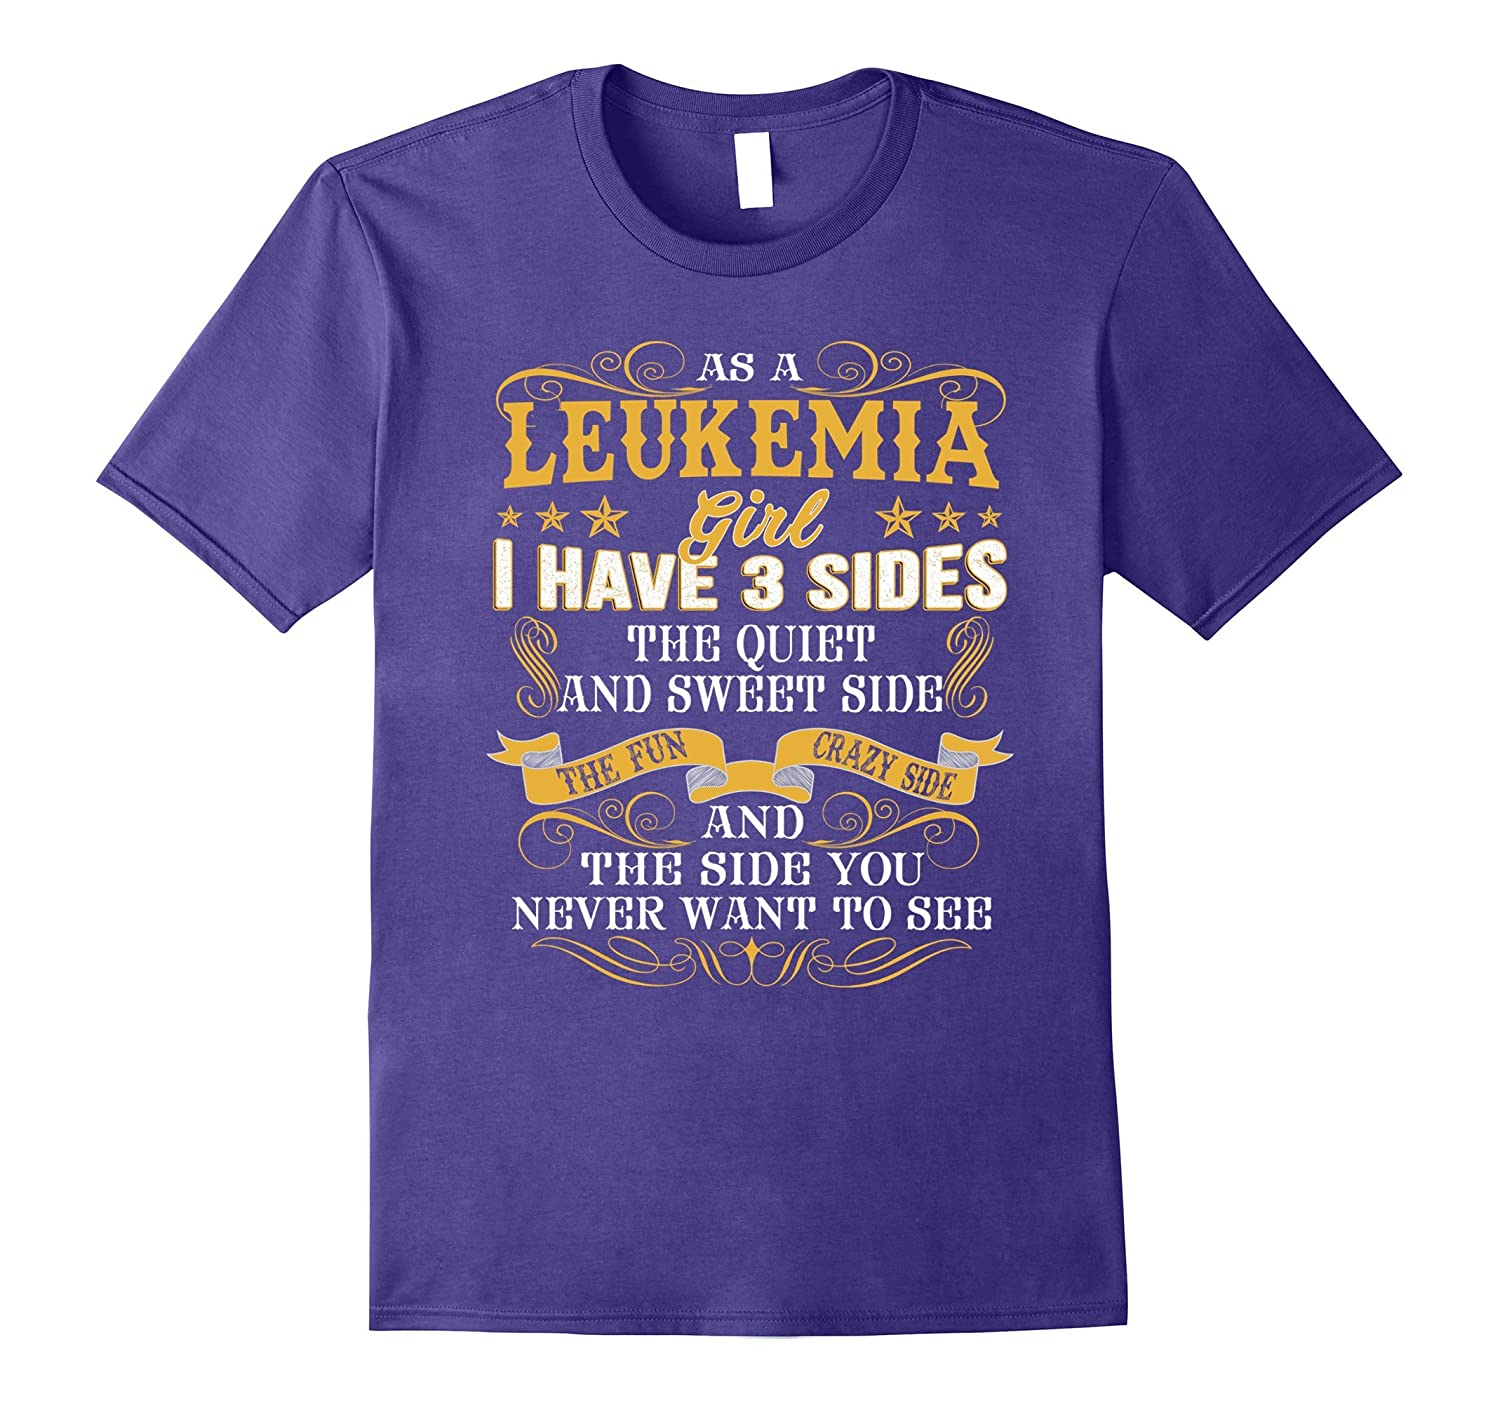 As a leukemia girl i have 3 sides funny t shirt